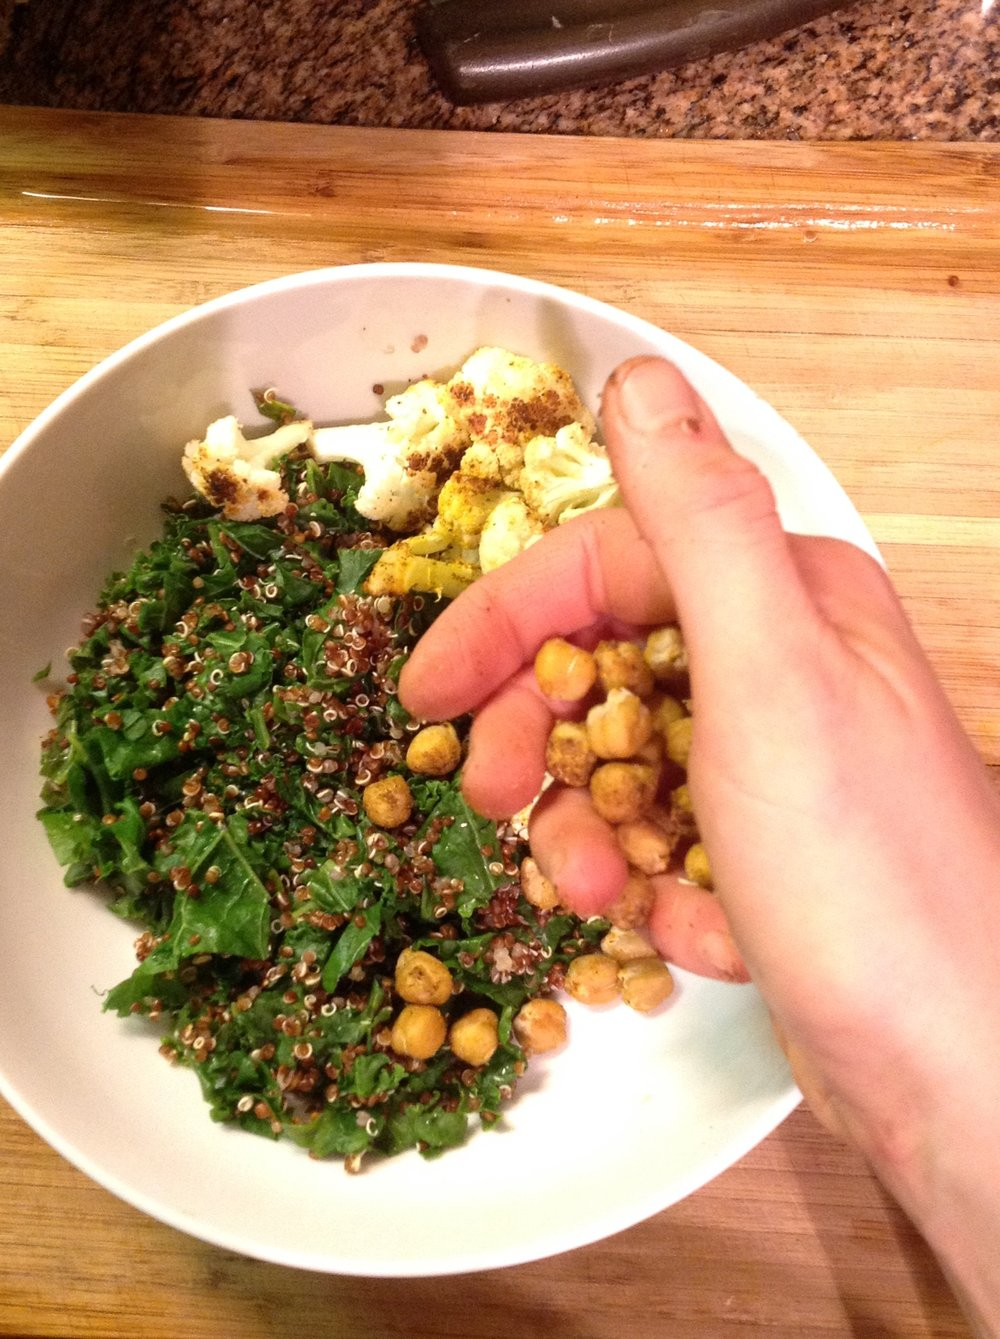 Chef's Tip:  Put these crunchy chickpeas over salads or grain bowls.  They can replace croutons for a healthy, oil-free, gluten-free, vegan options